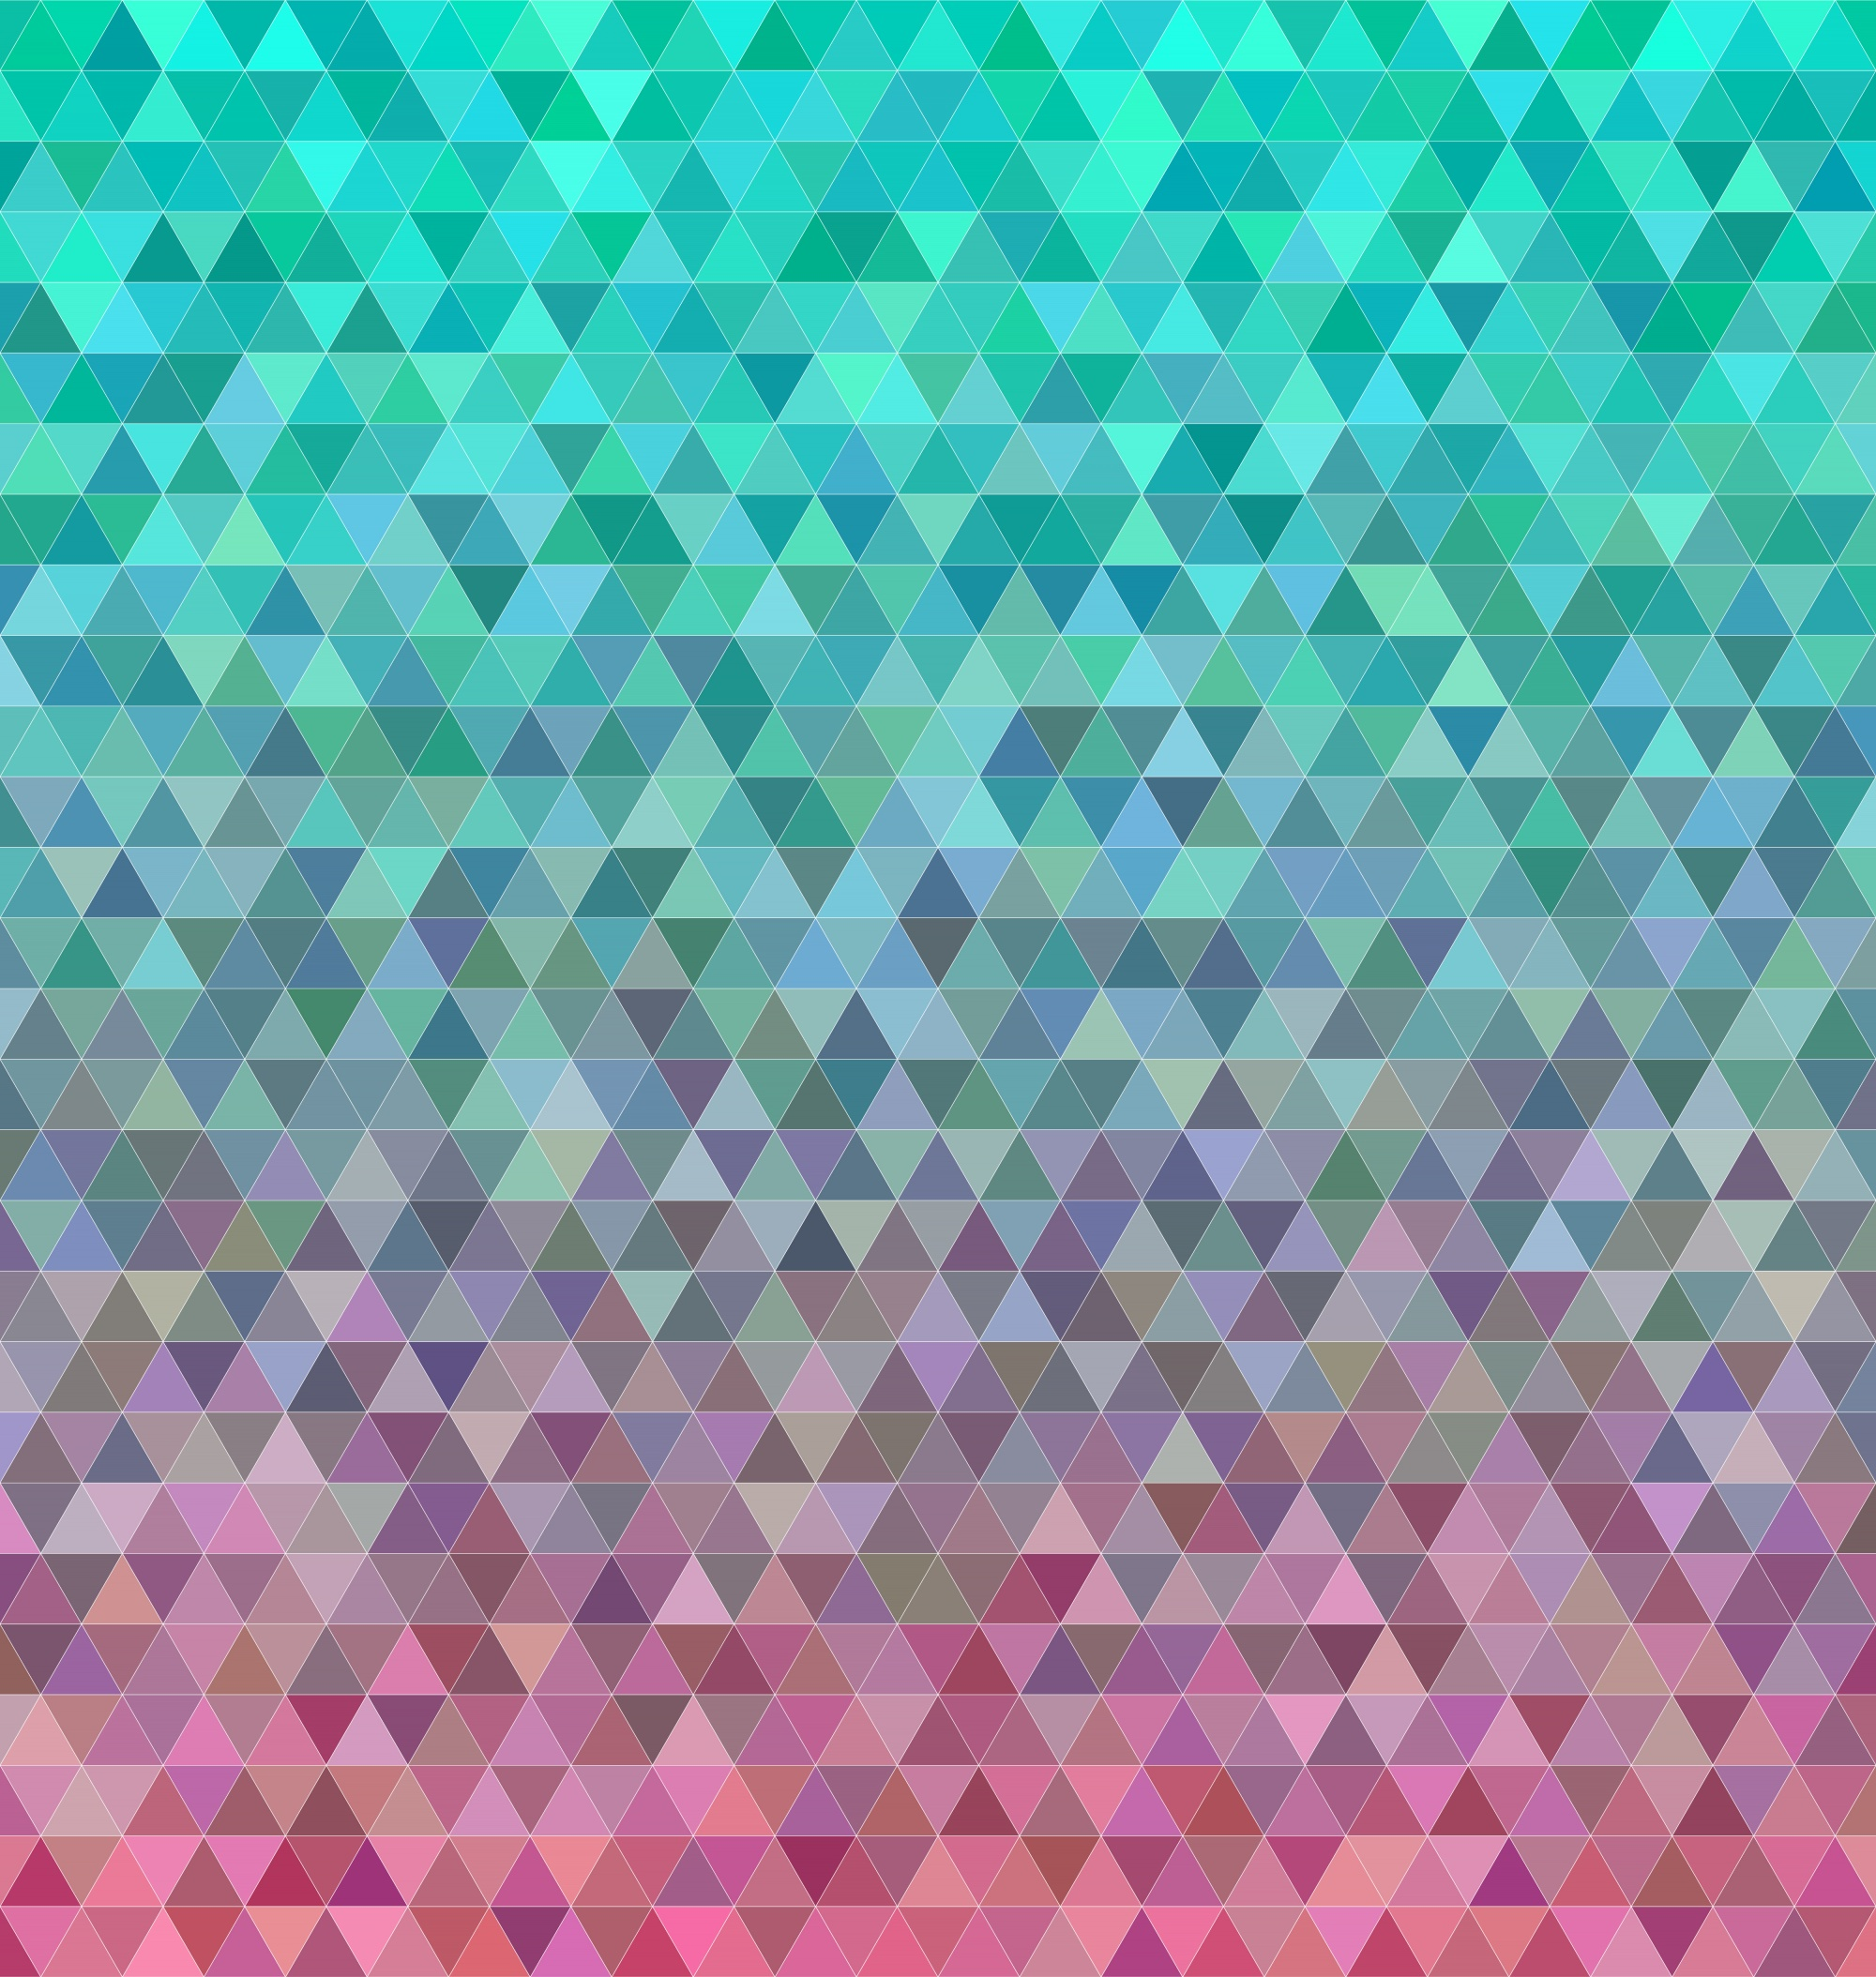 Abstract regular triangle mosaic tile background